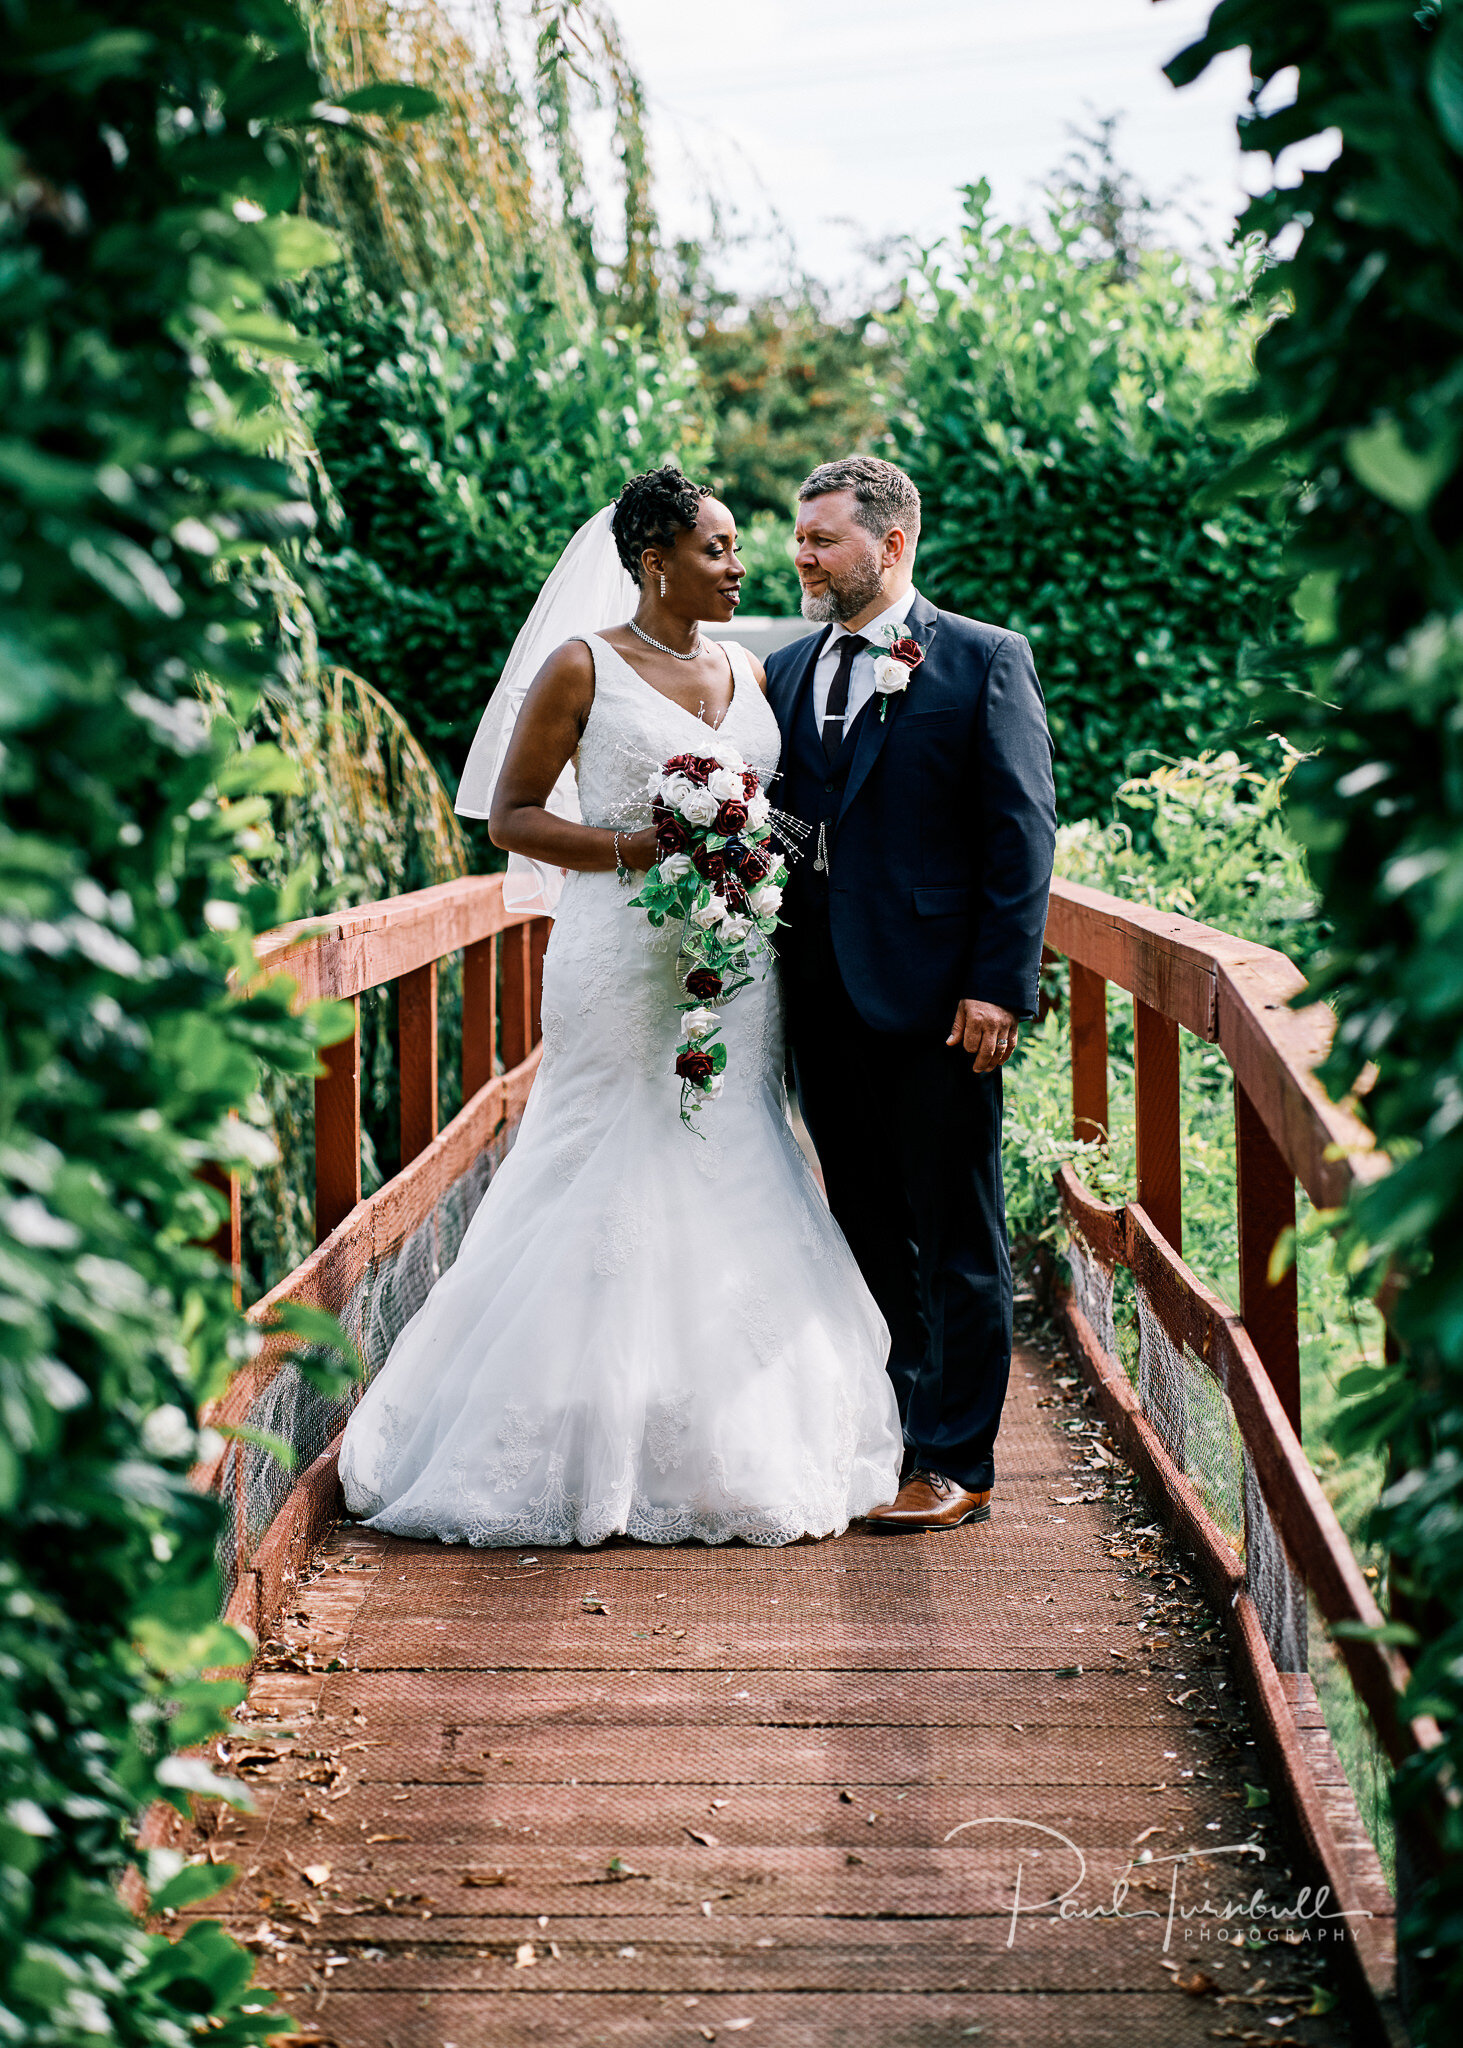 Bride and groom on the bridge in the gardens of Lazaat Hotel. Wedding photographer Hull